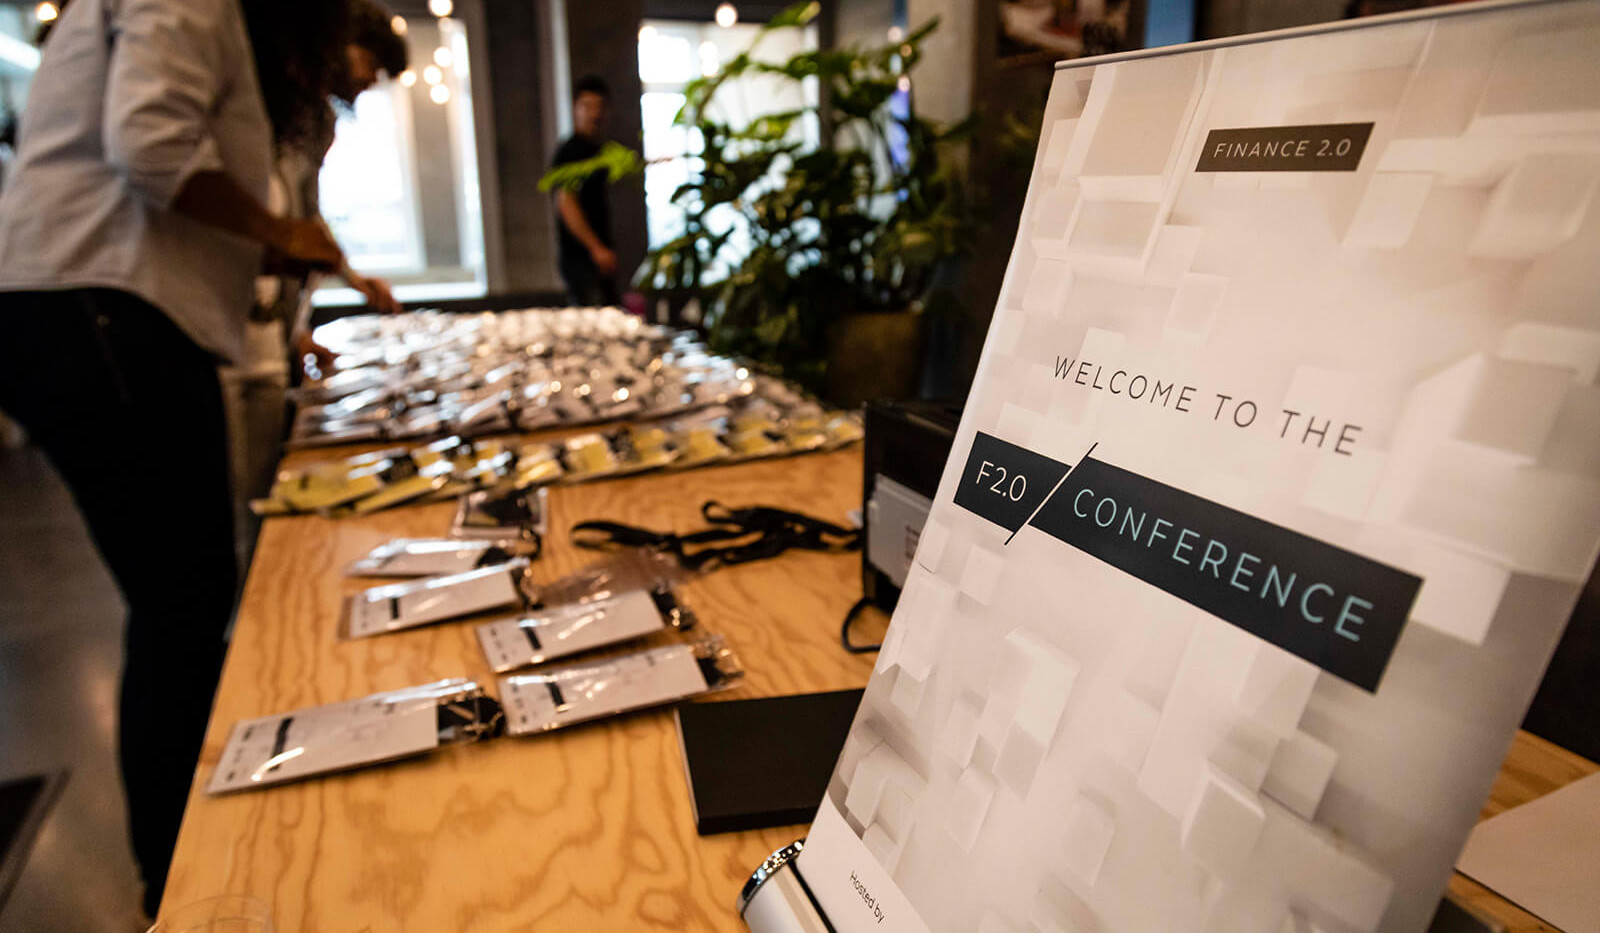 Welcome to the Finance 2.0 Conference (Zurich)